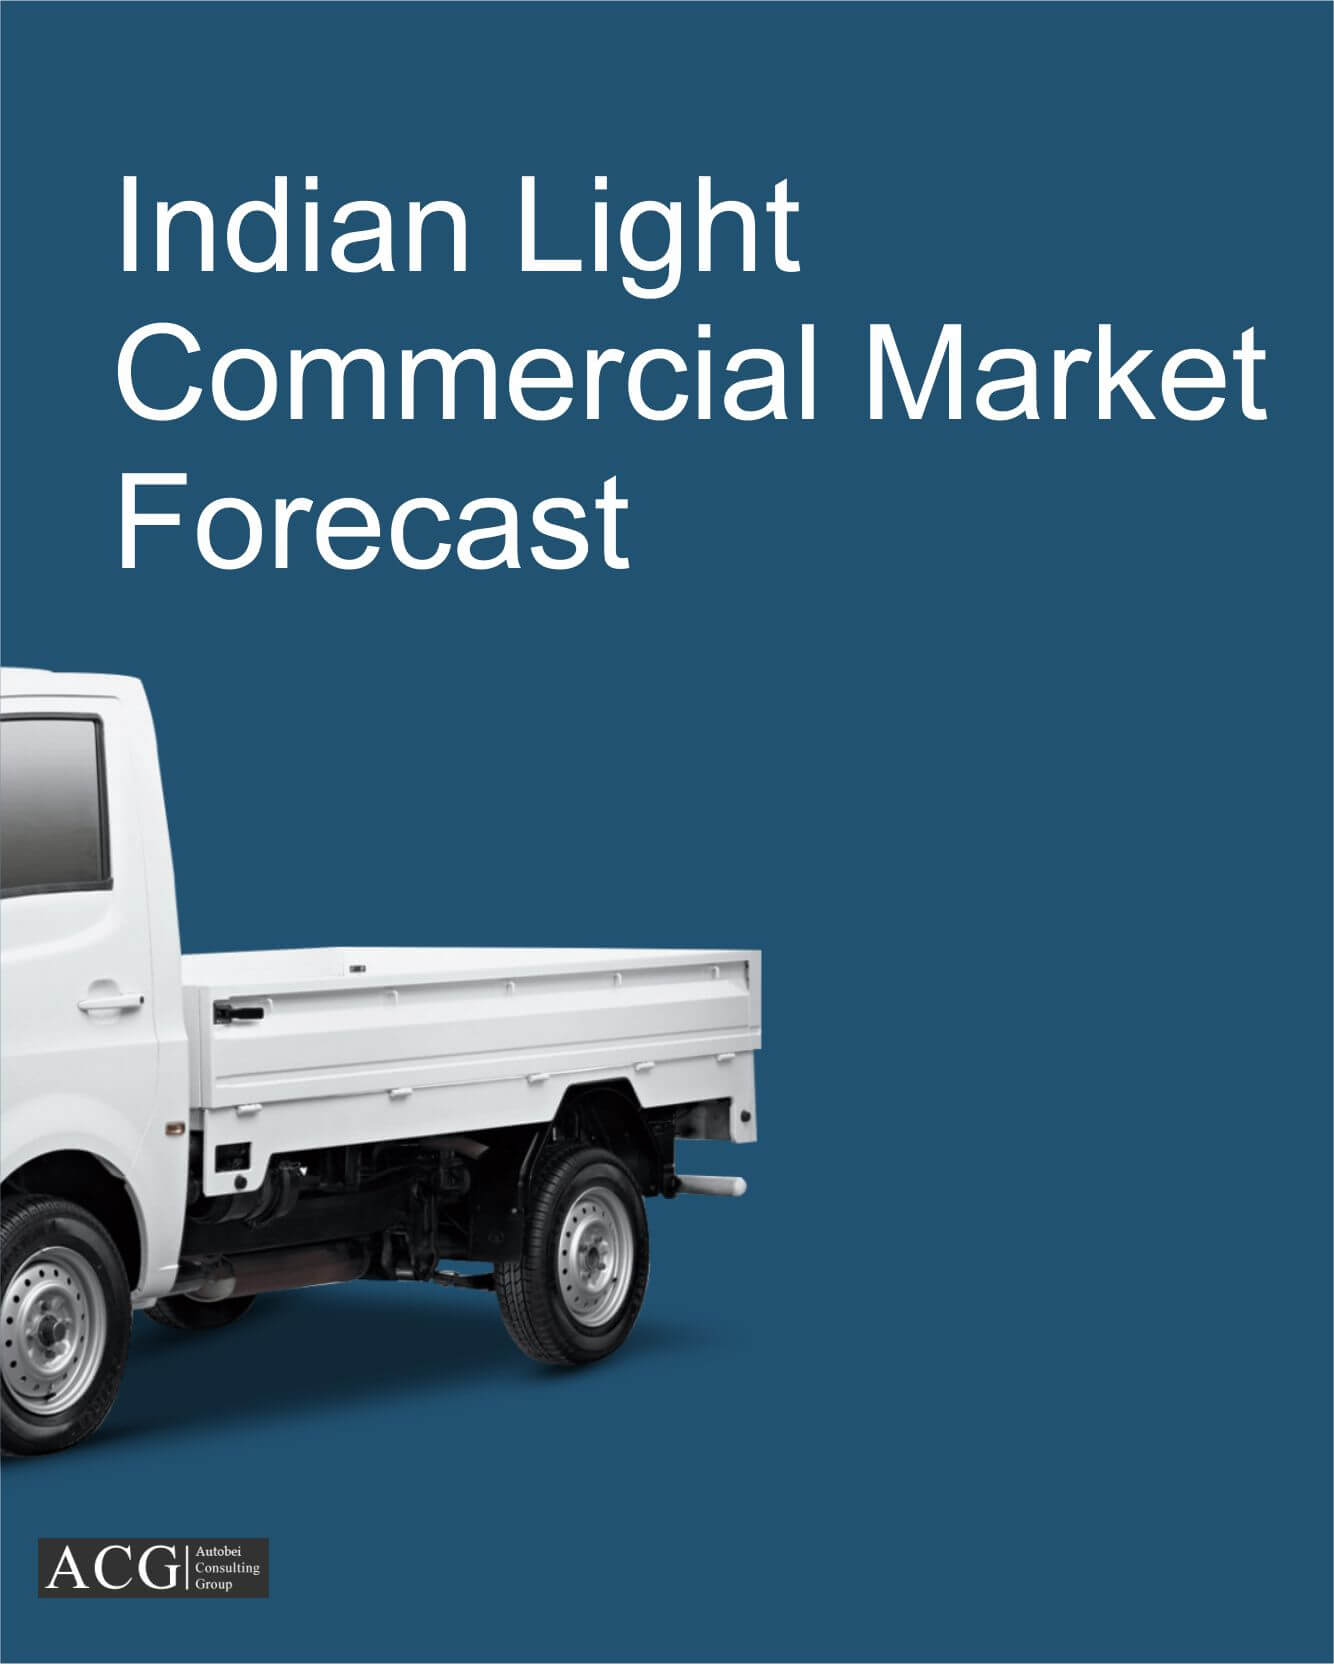 Indian Light Commercial Market Forecast